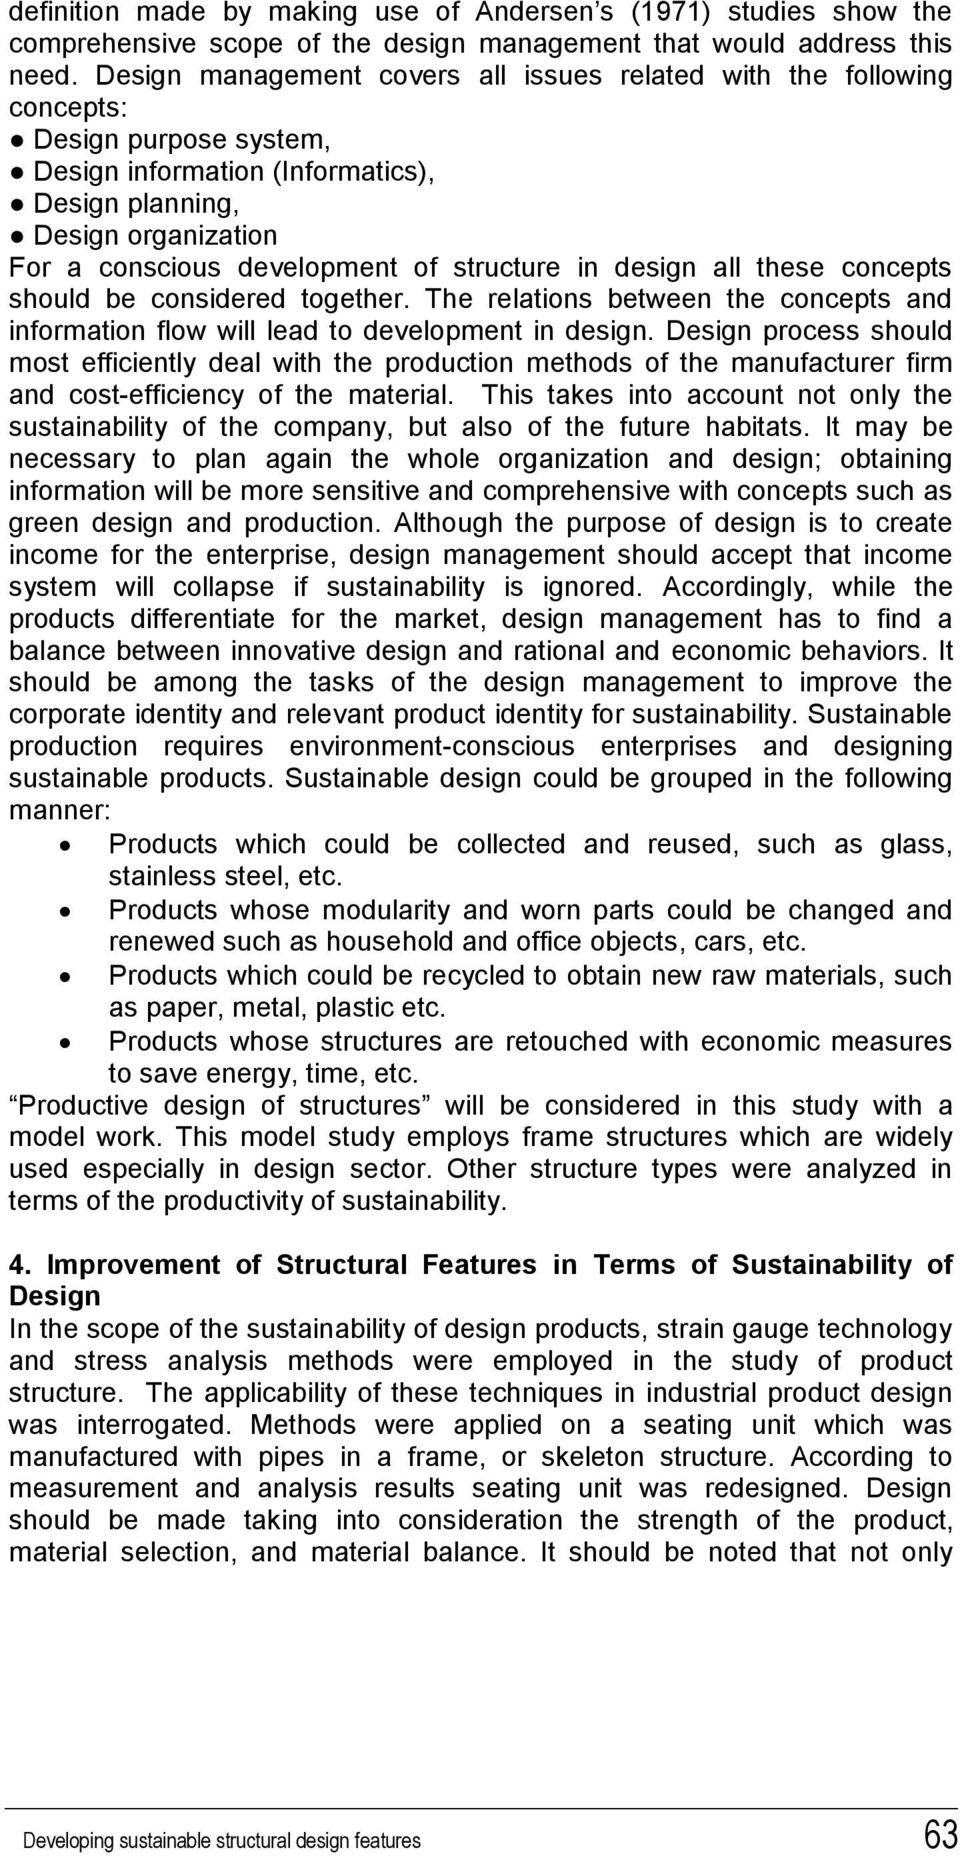 structure in design all these concepts should be considered together. The relations between the concepts and information flow will lead to development in design.